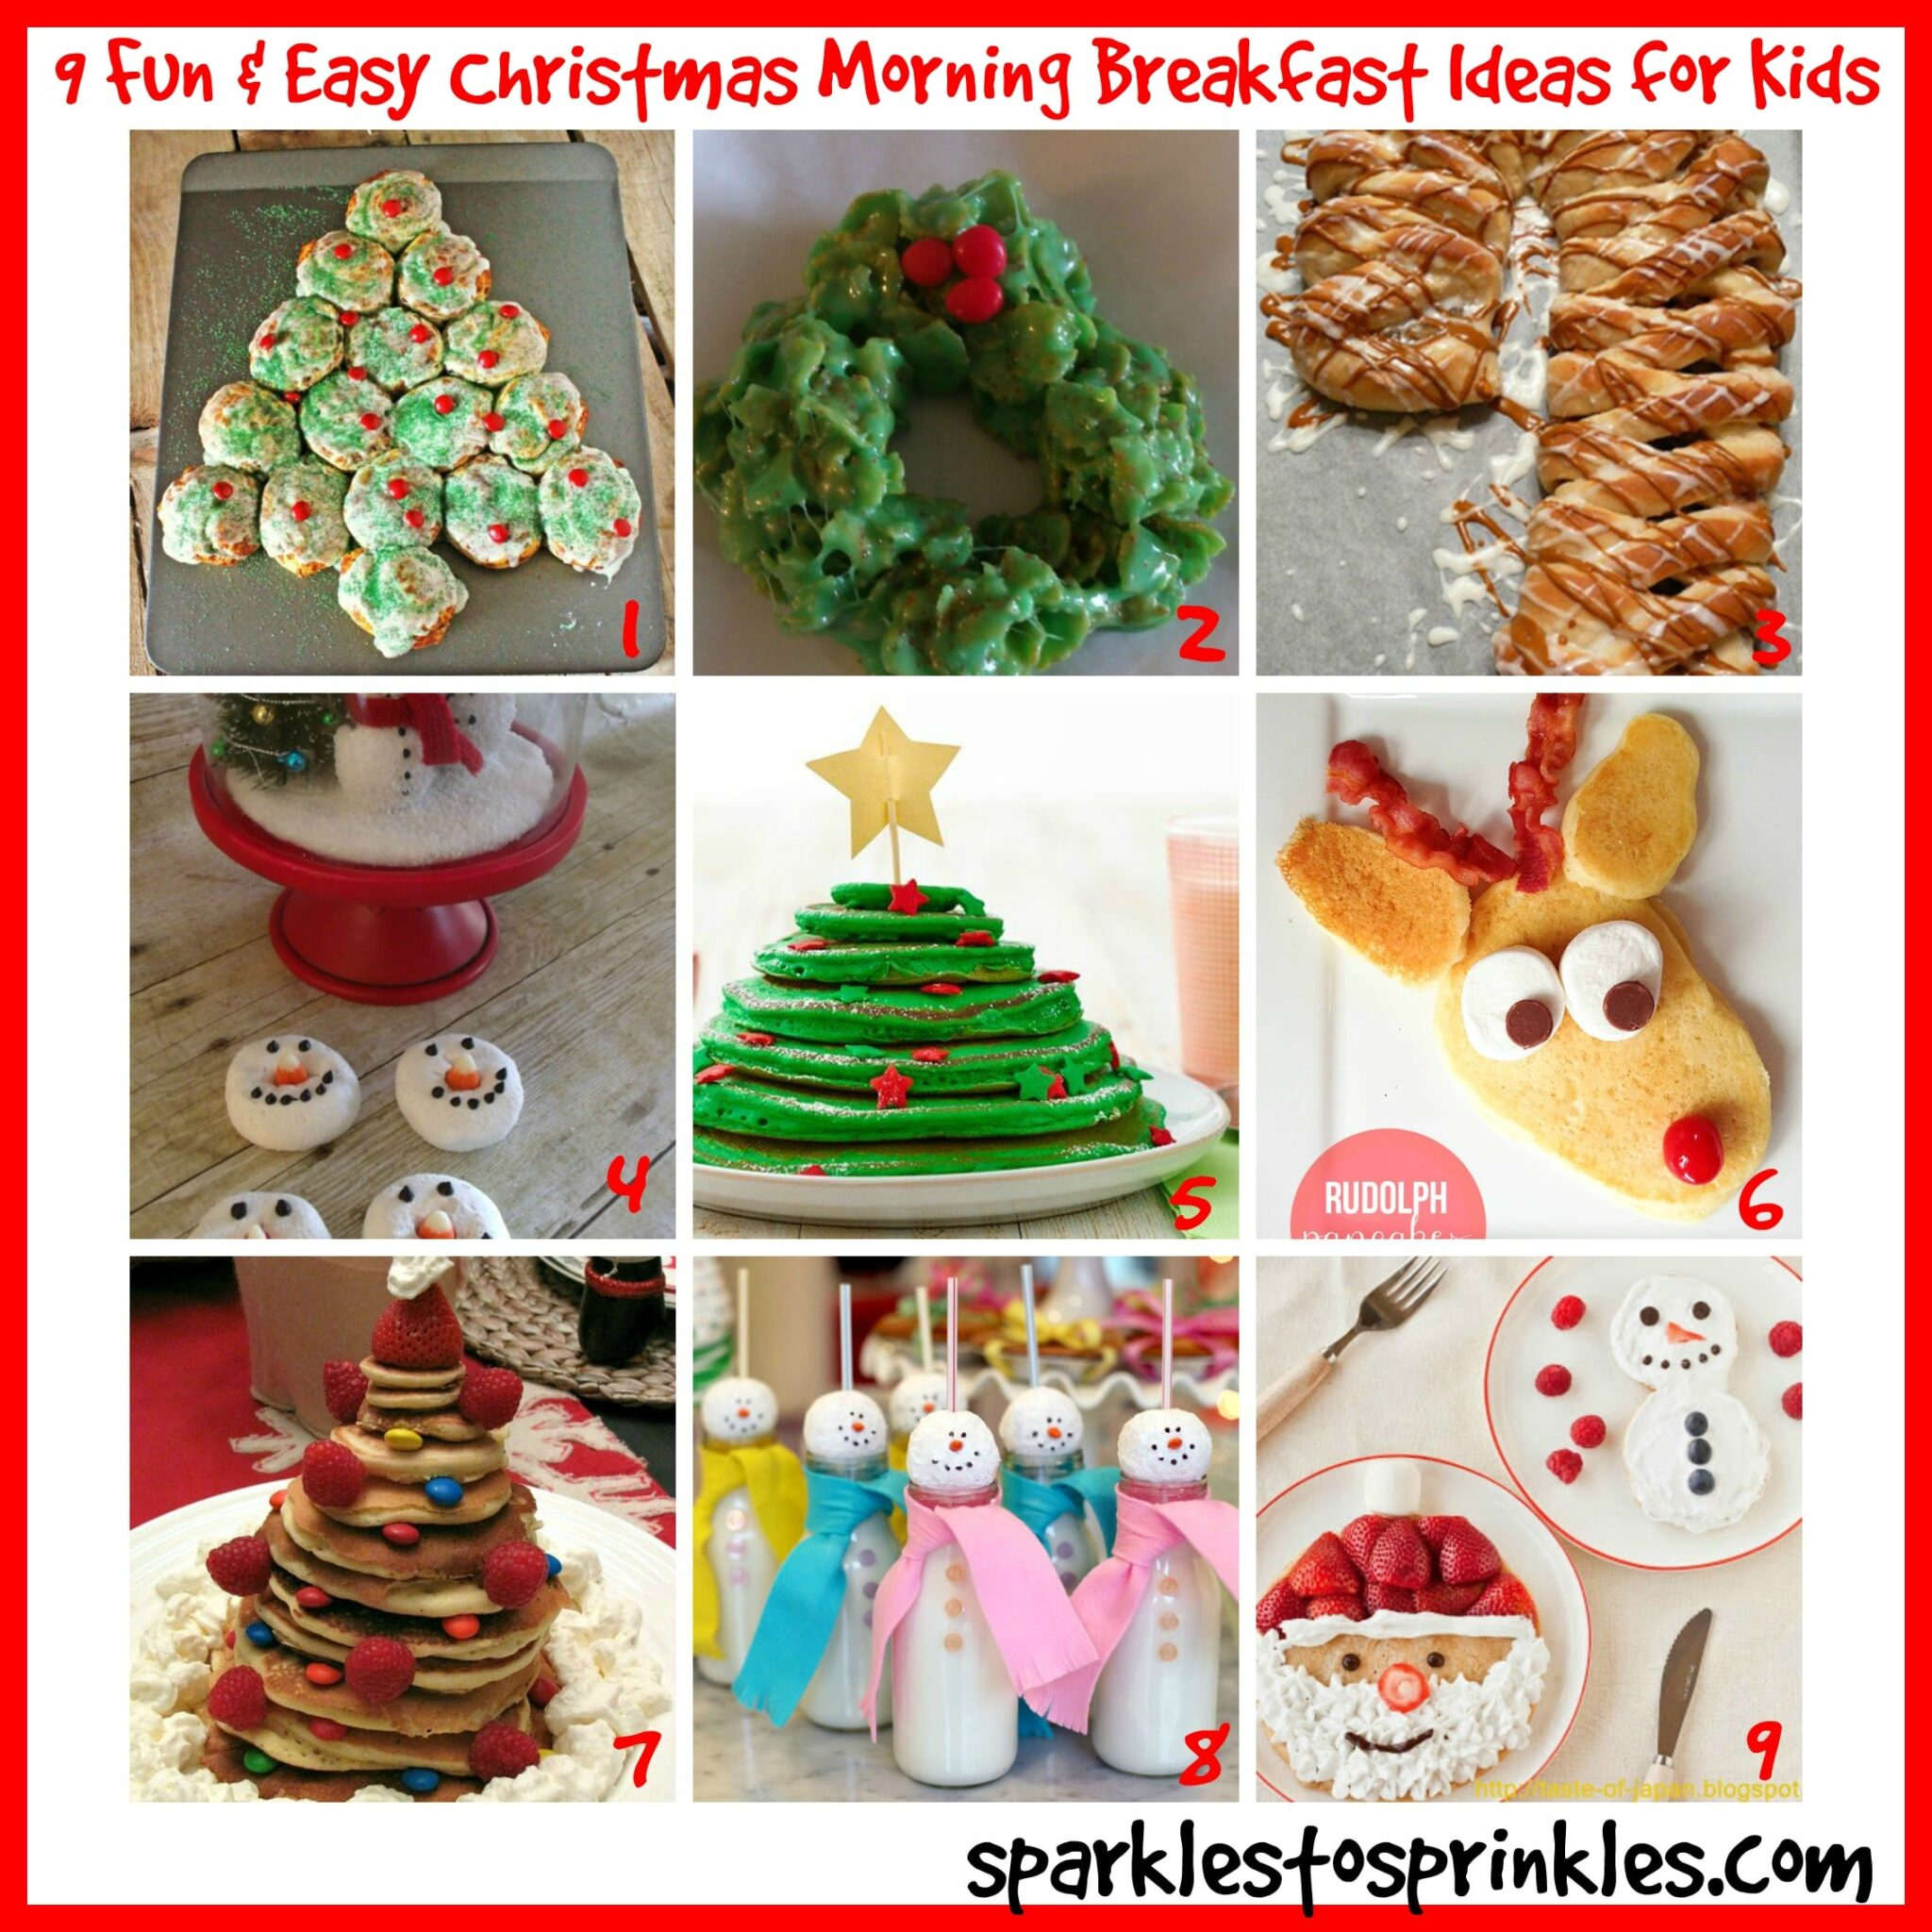 9 Fun & Easy Christmas Morning Breakfast Ideas for Kids - Sparkles ...